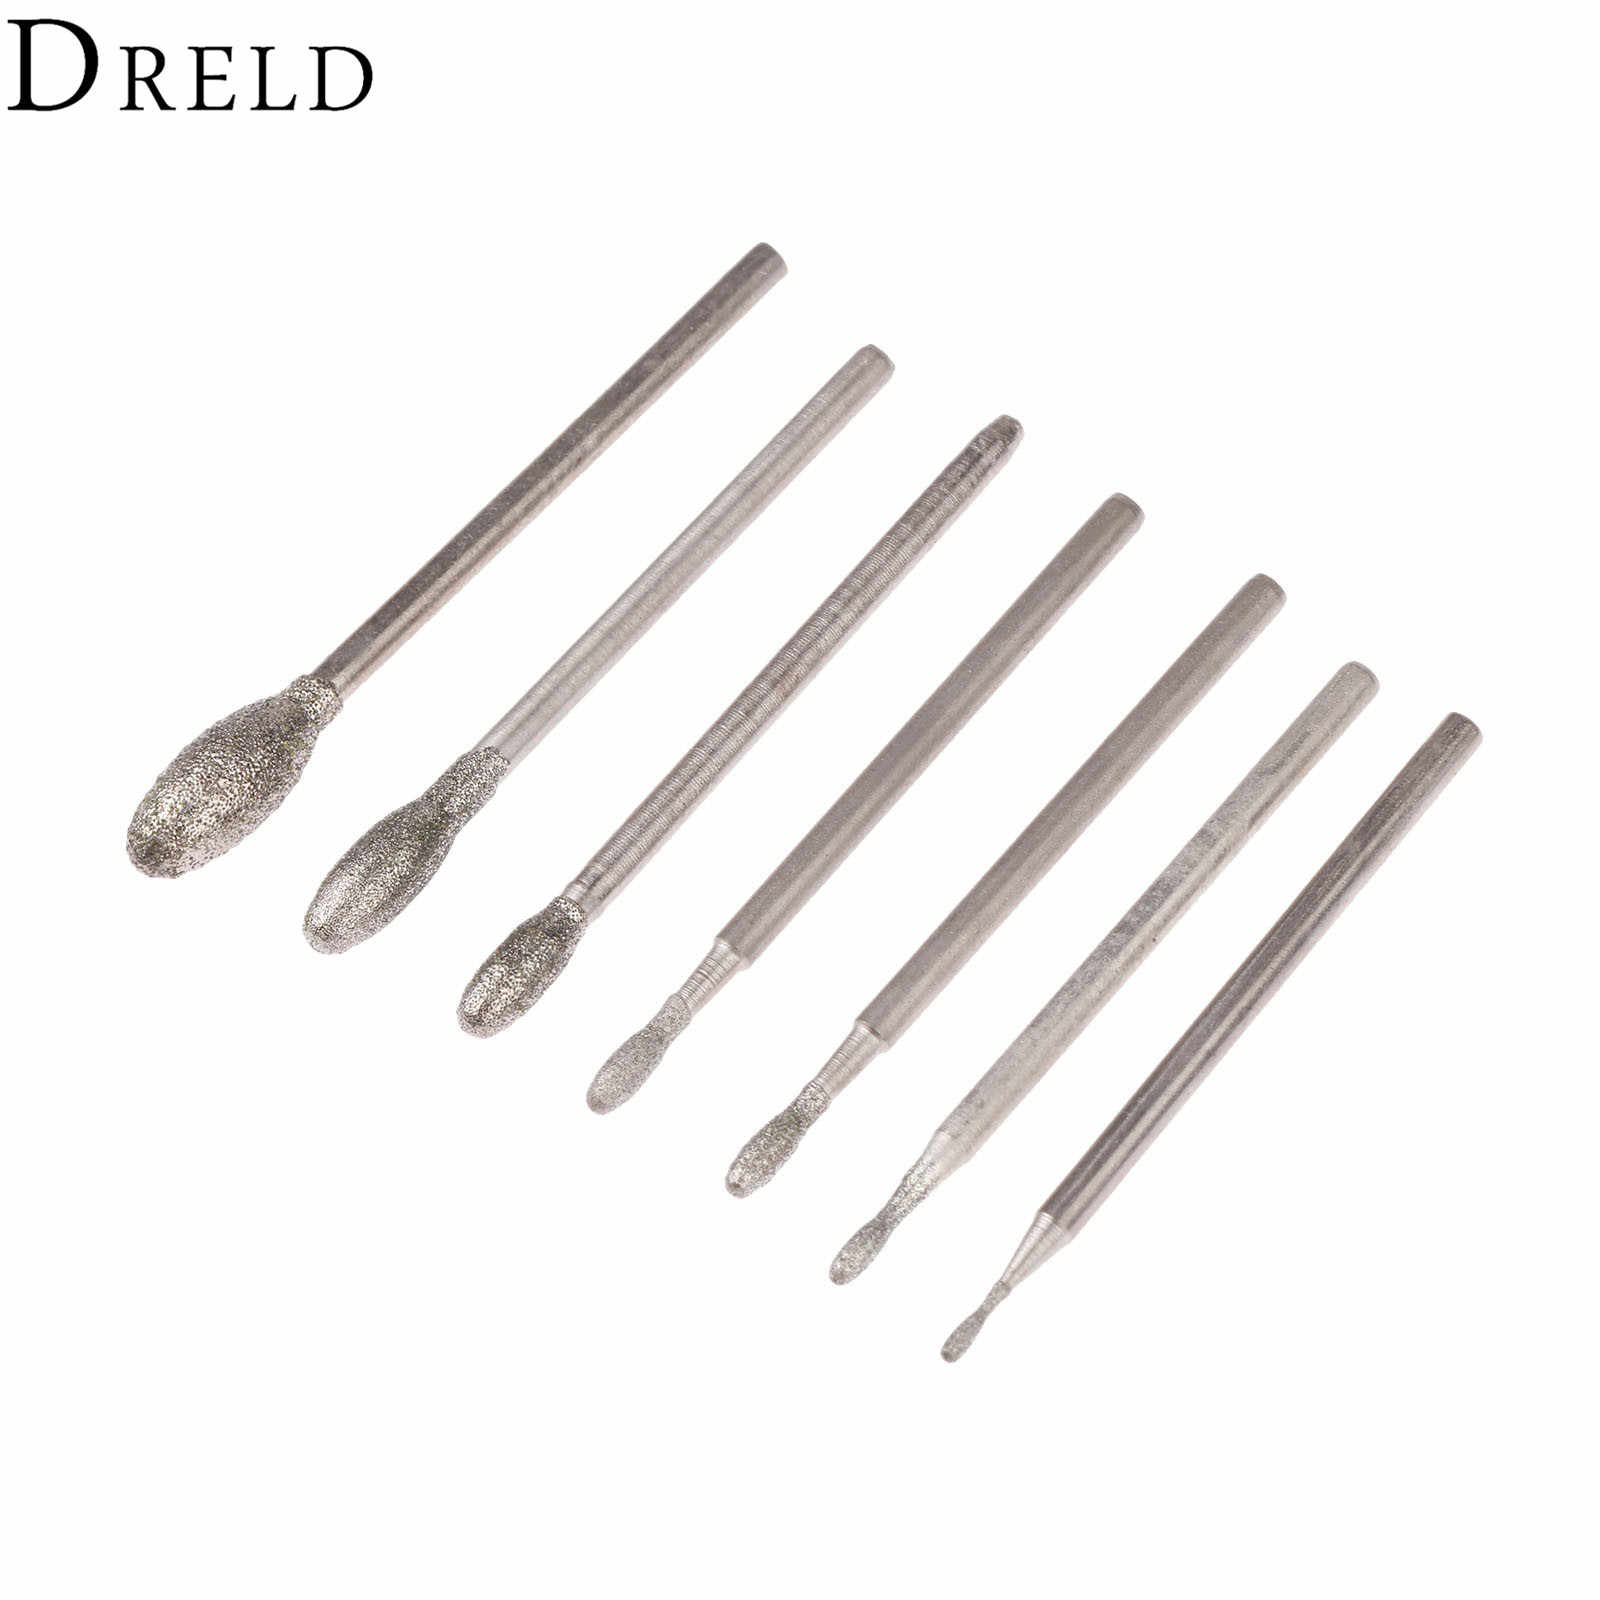 Dreld 7 Pcs Body Accesories Oval Berlian Grinding Kepala Duri Bit 2.35 Mm Shank Jade Batu Polishing Engraving Alat